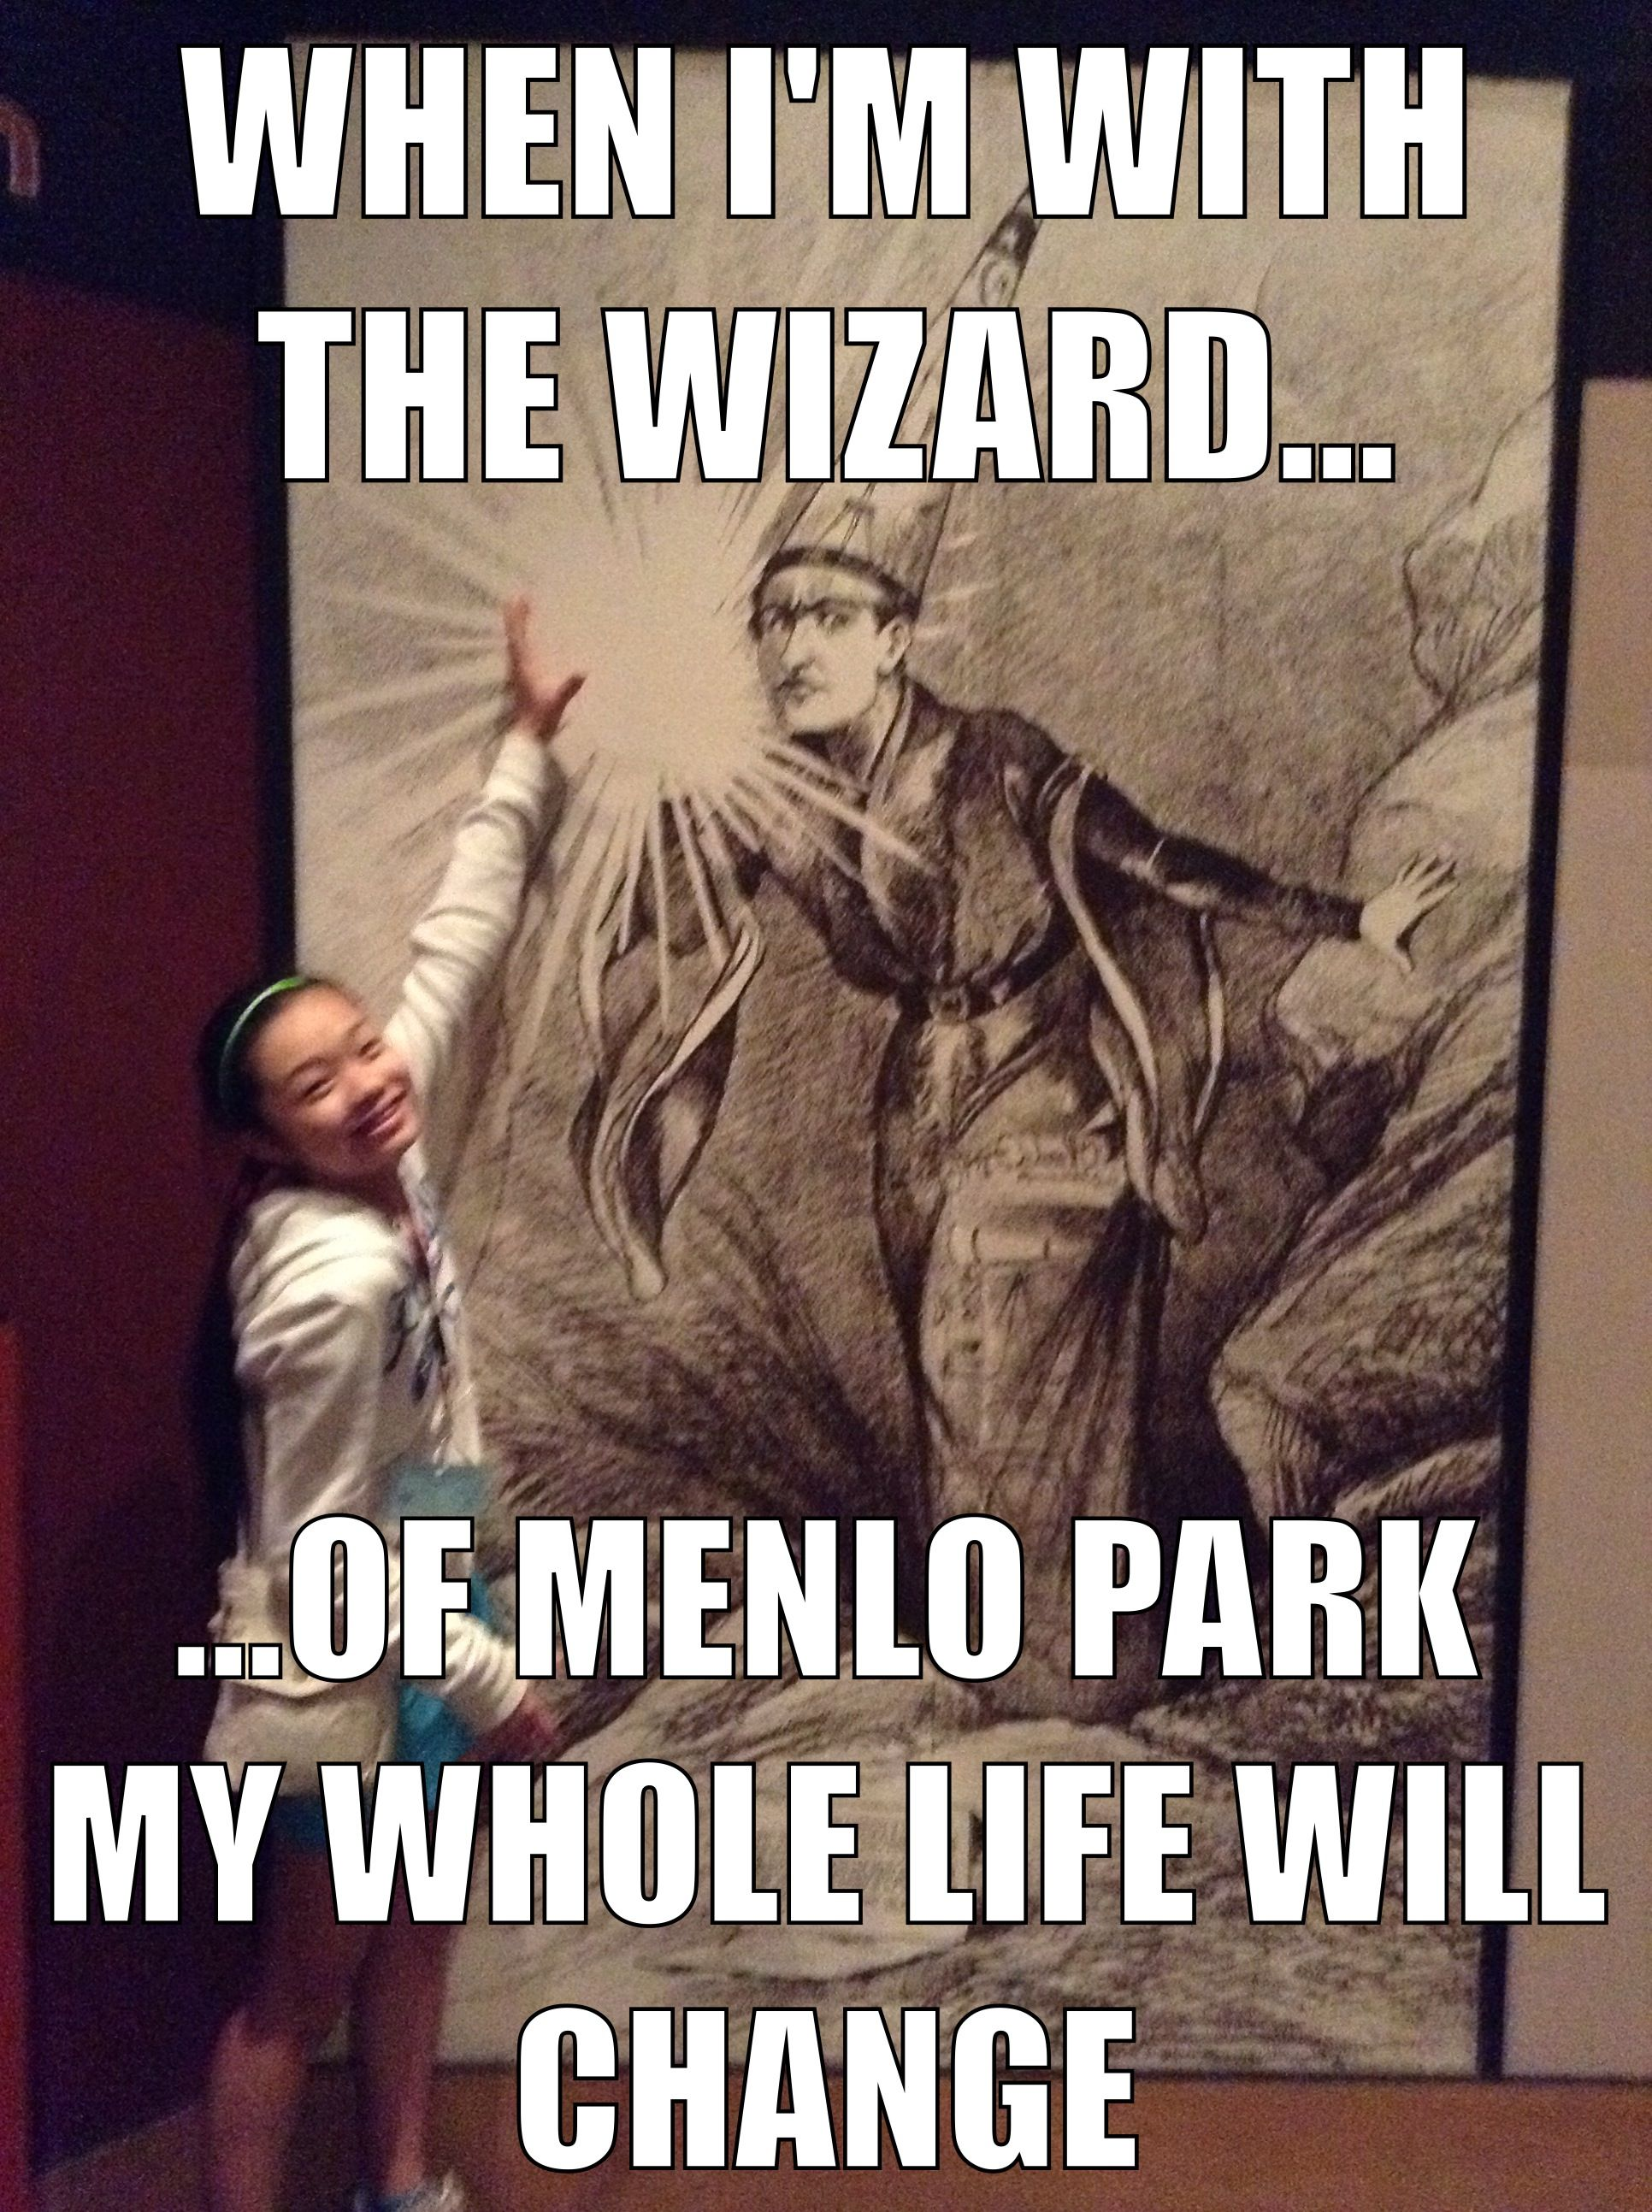 who is known as the wizard of menlo park